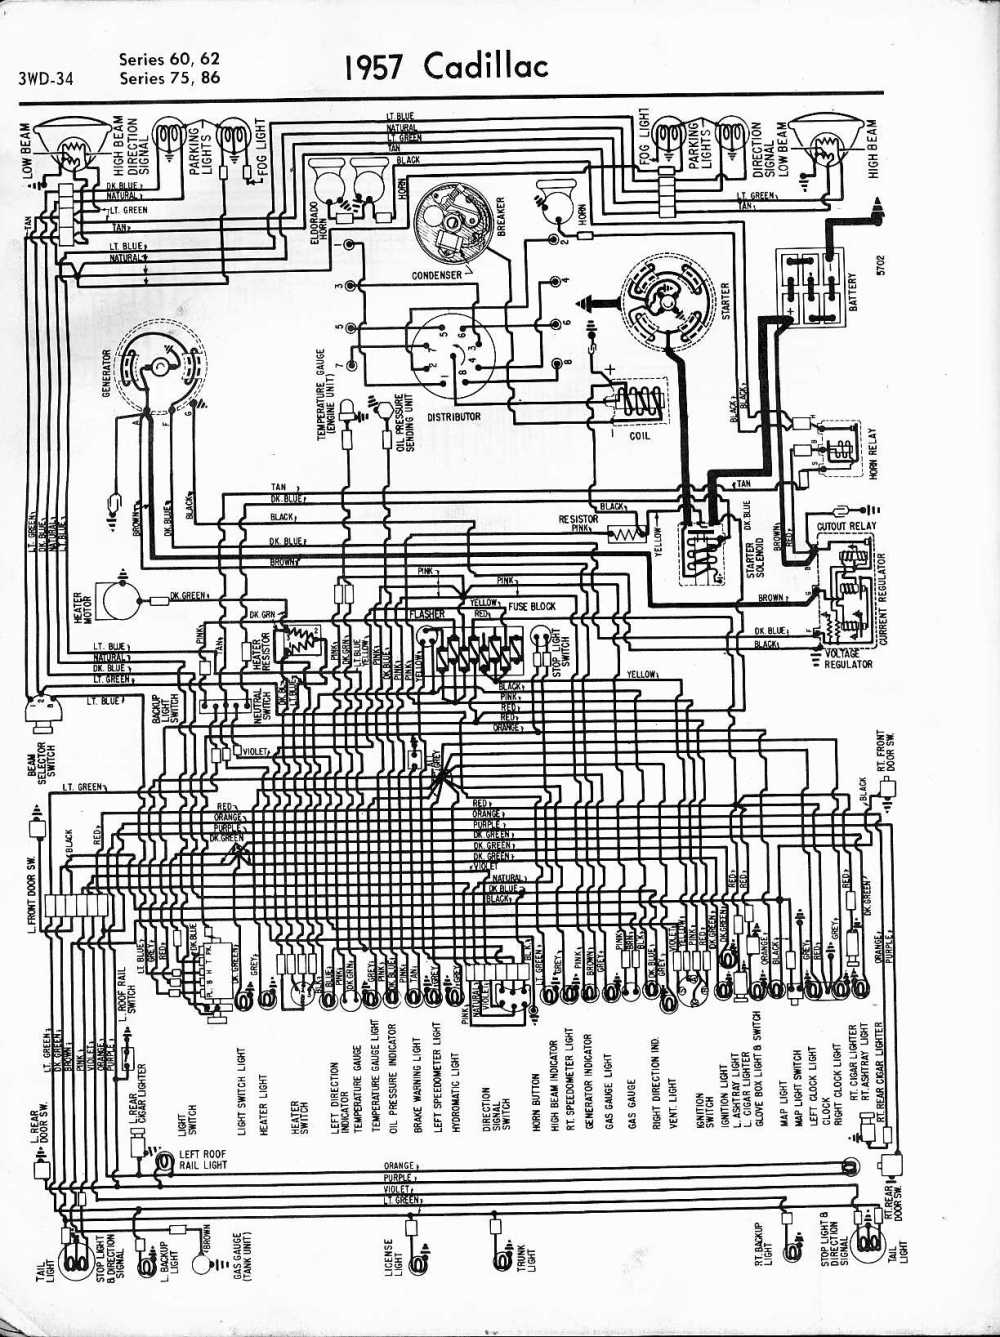 medium resolution of cadillac wiring diagrams wiring diagram usedcadillac wiring diagrams 1957 1965 cadillac wiring diagrams schematics cadillac wiring